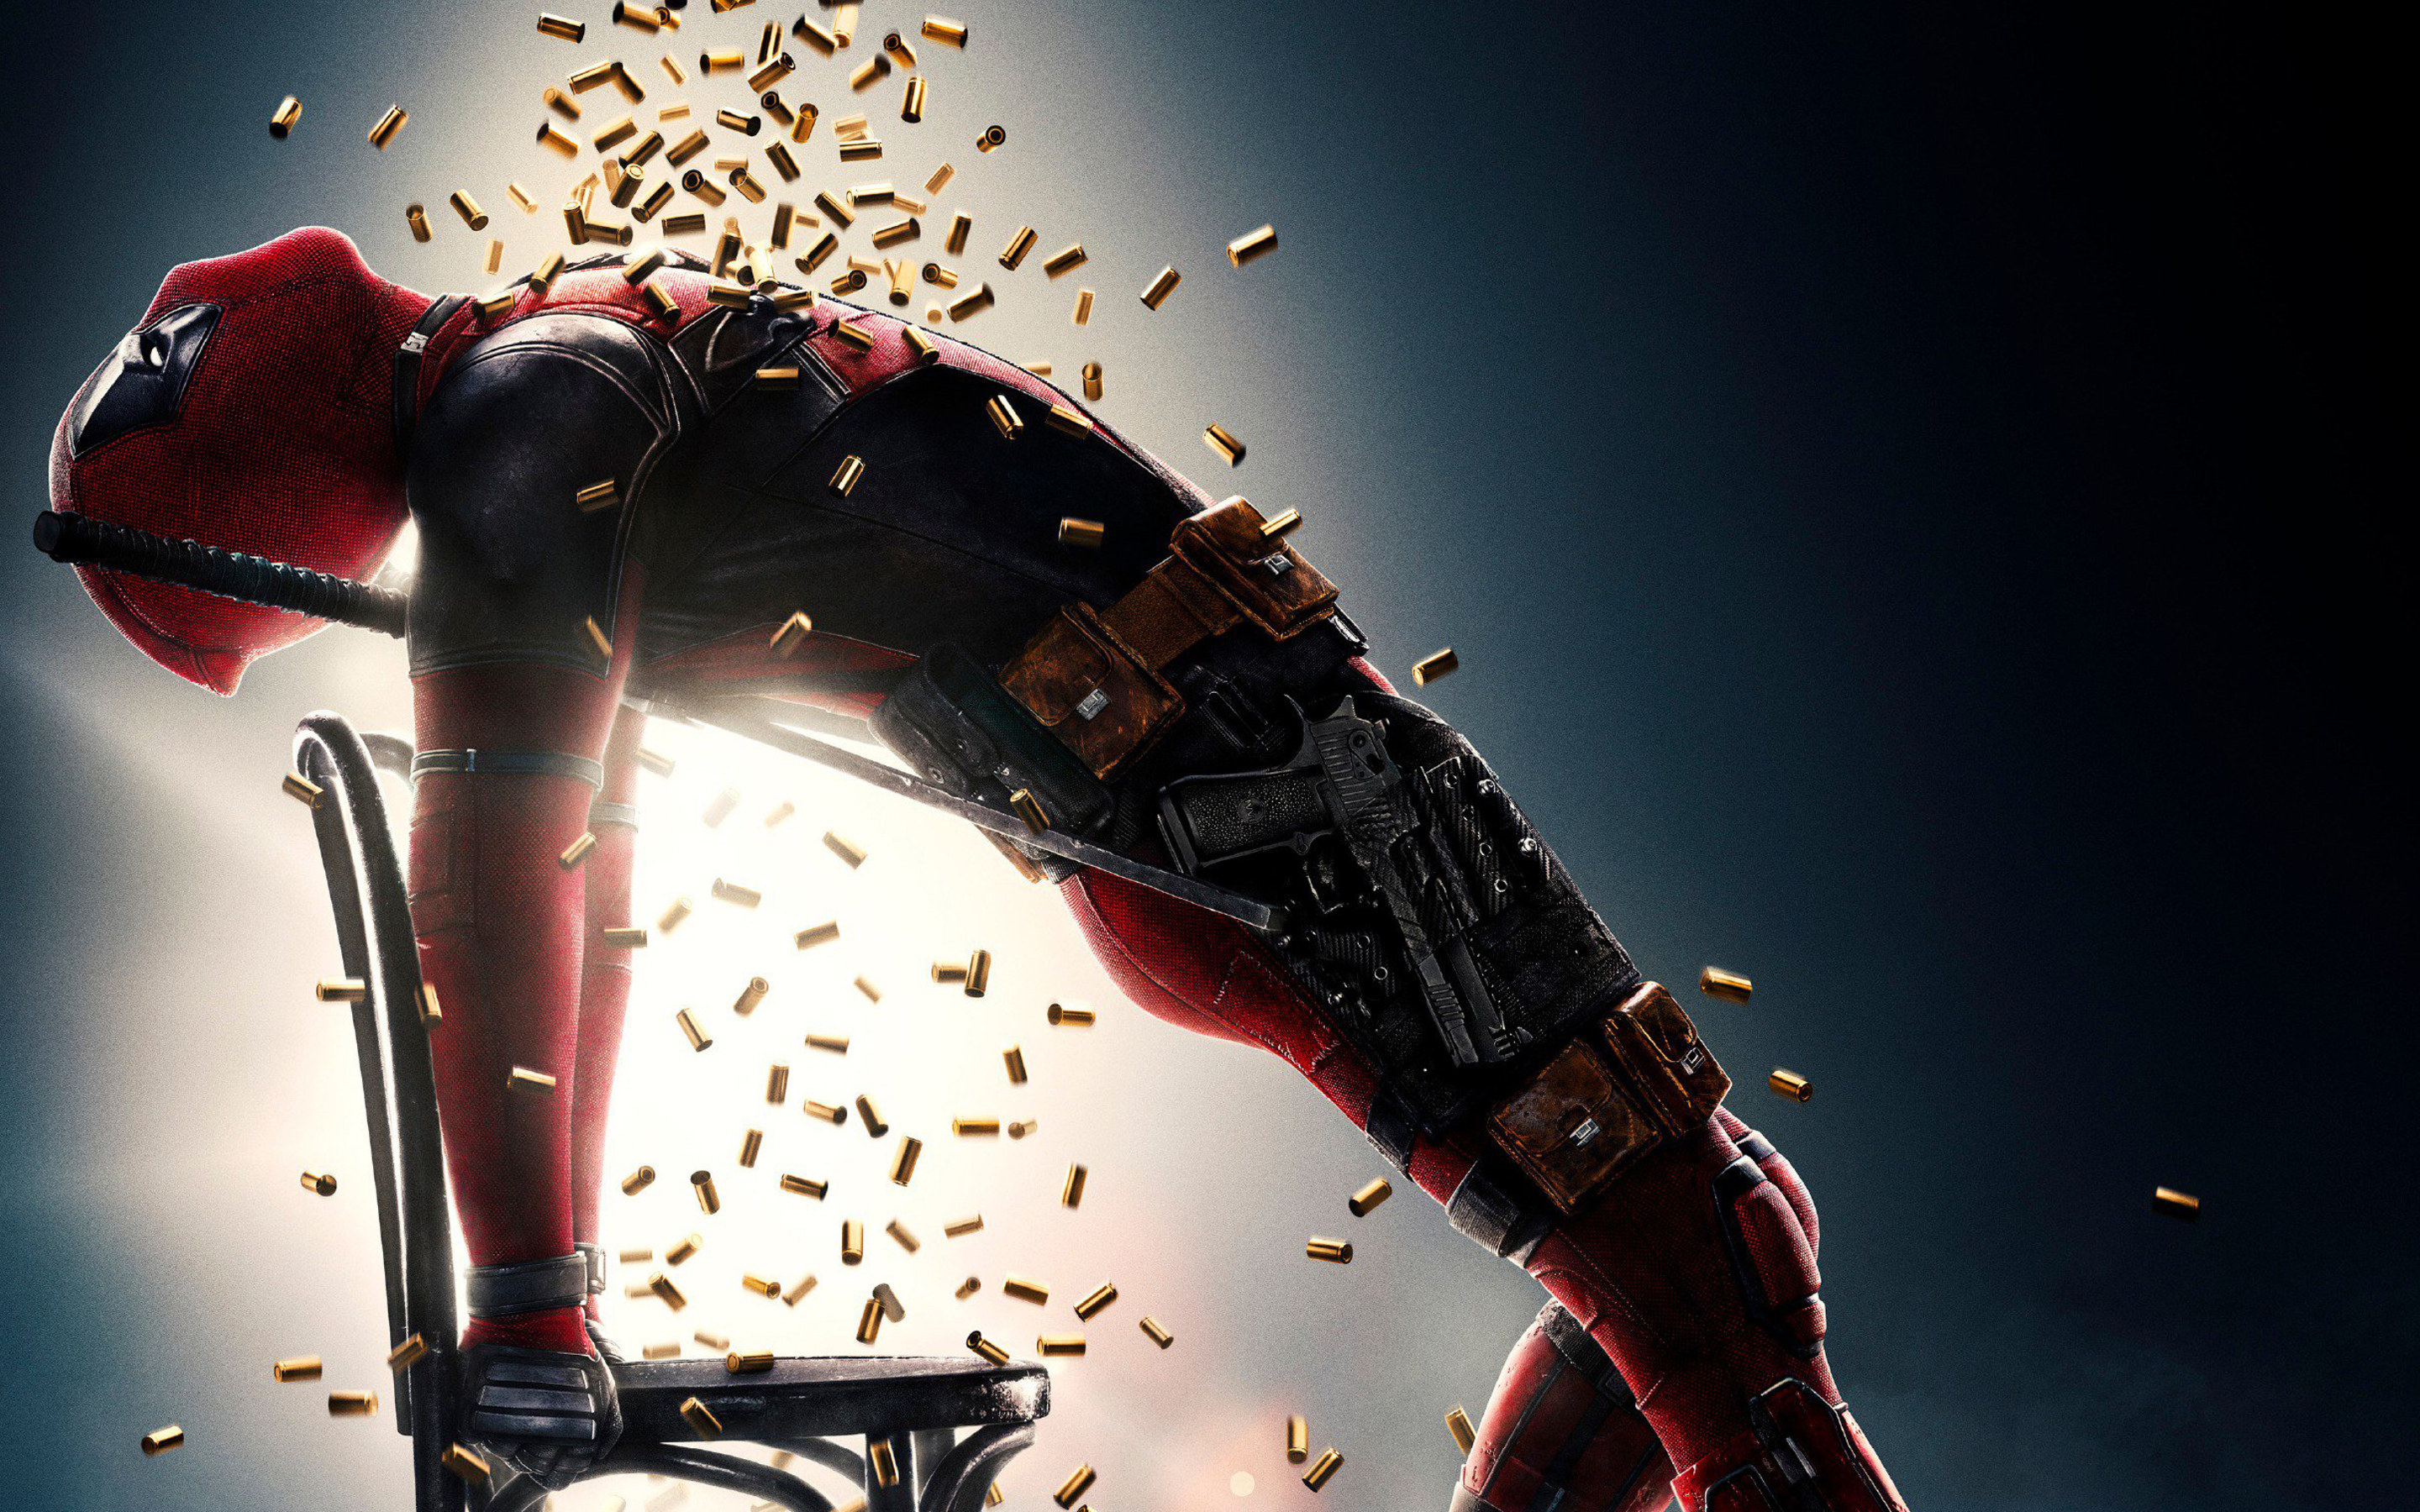 2880x1800 Deadpool 2 Poster 2018 Movie Macbook Pro Retina Hd 4k